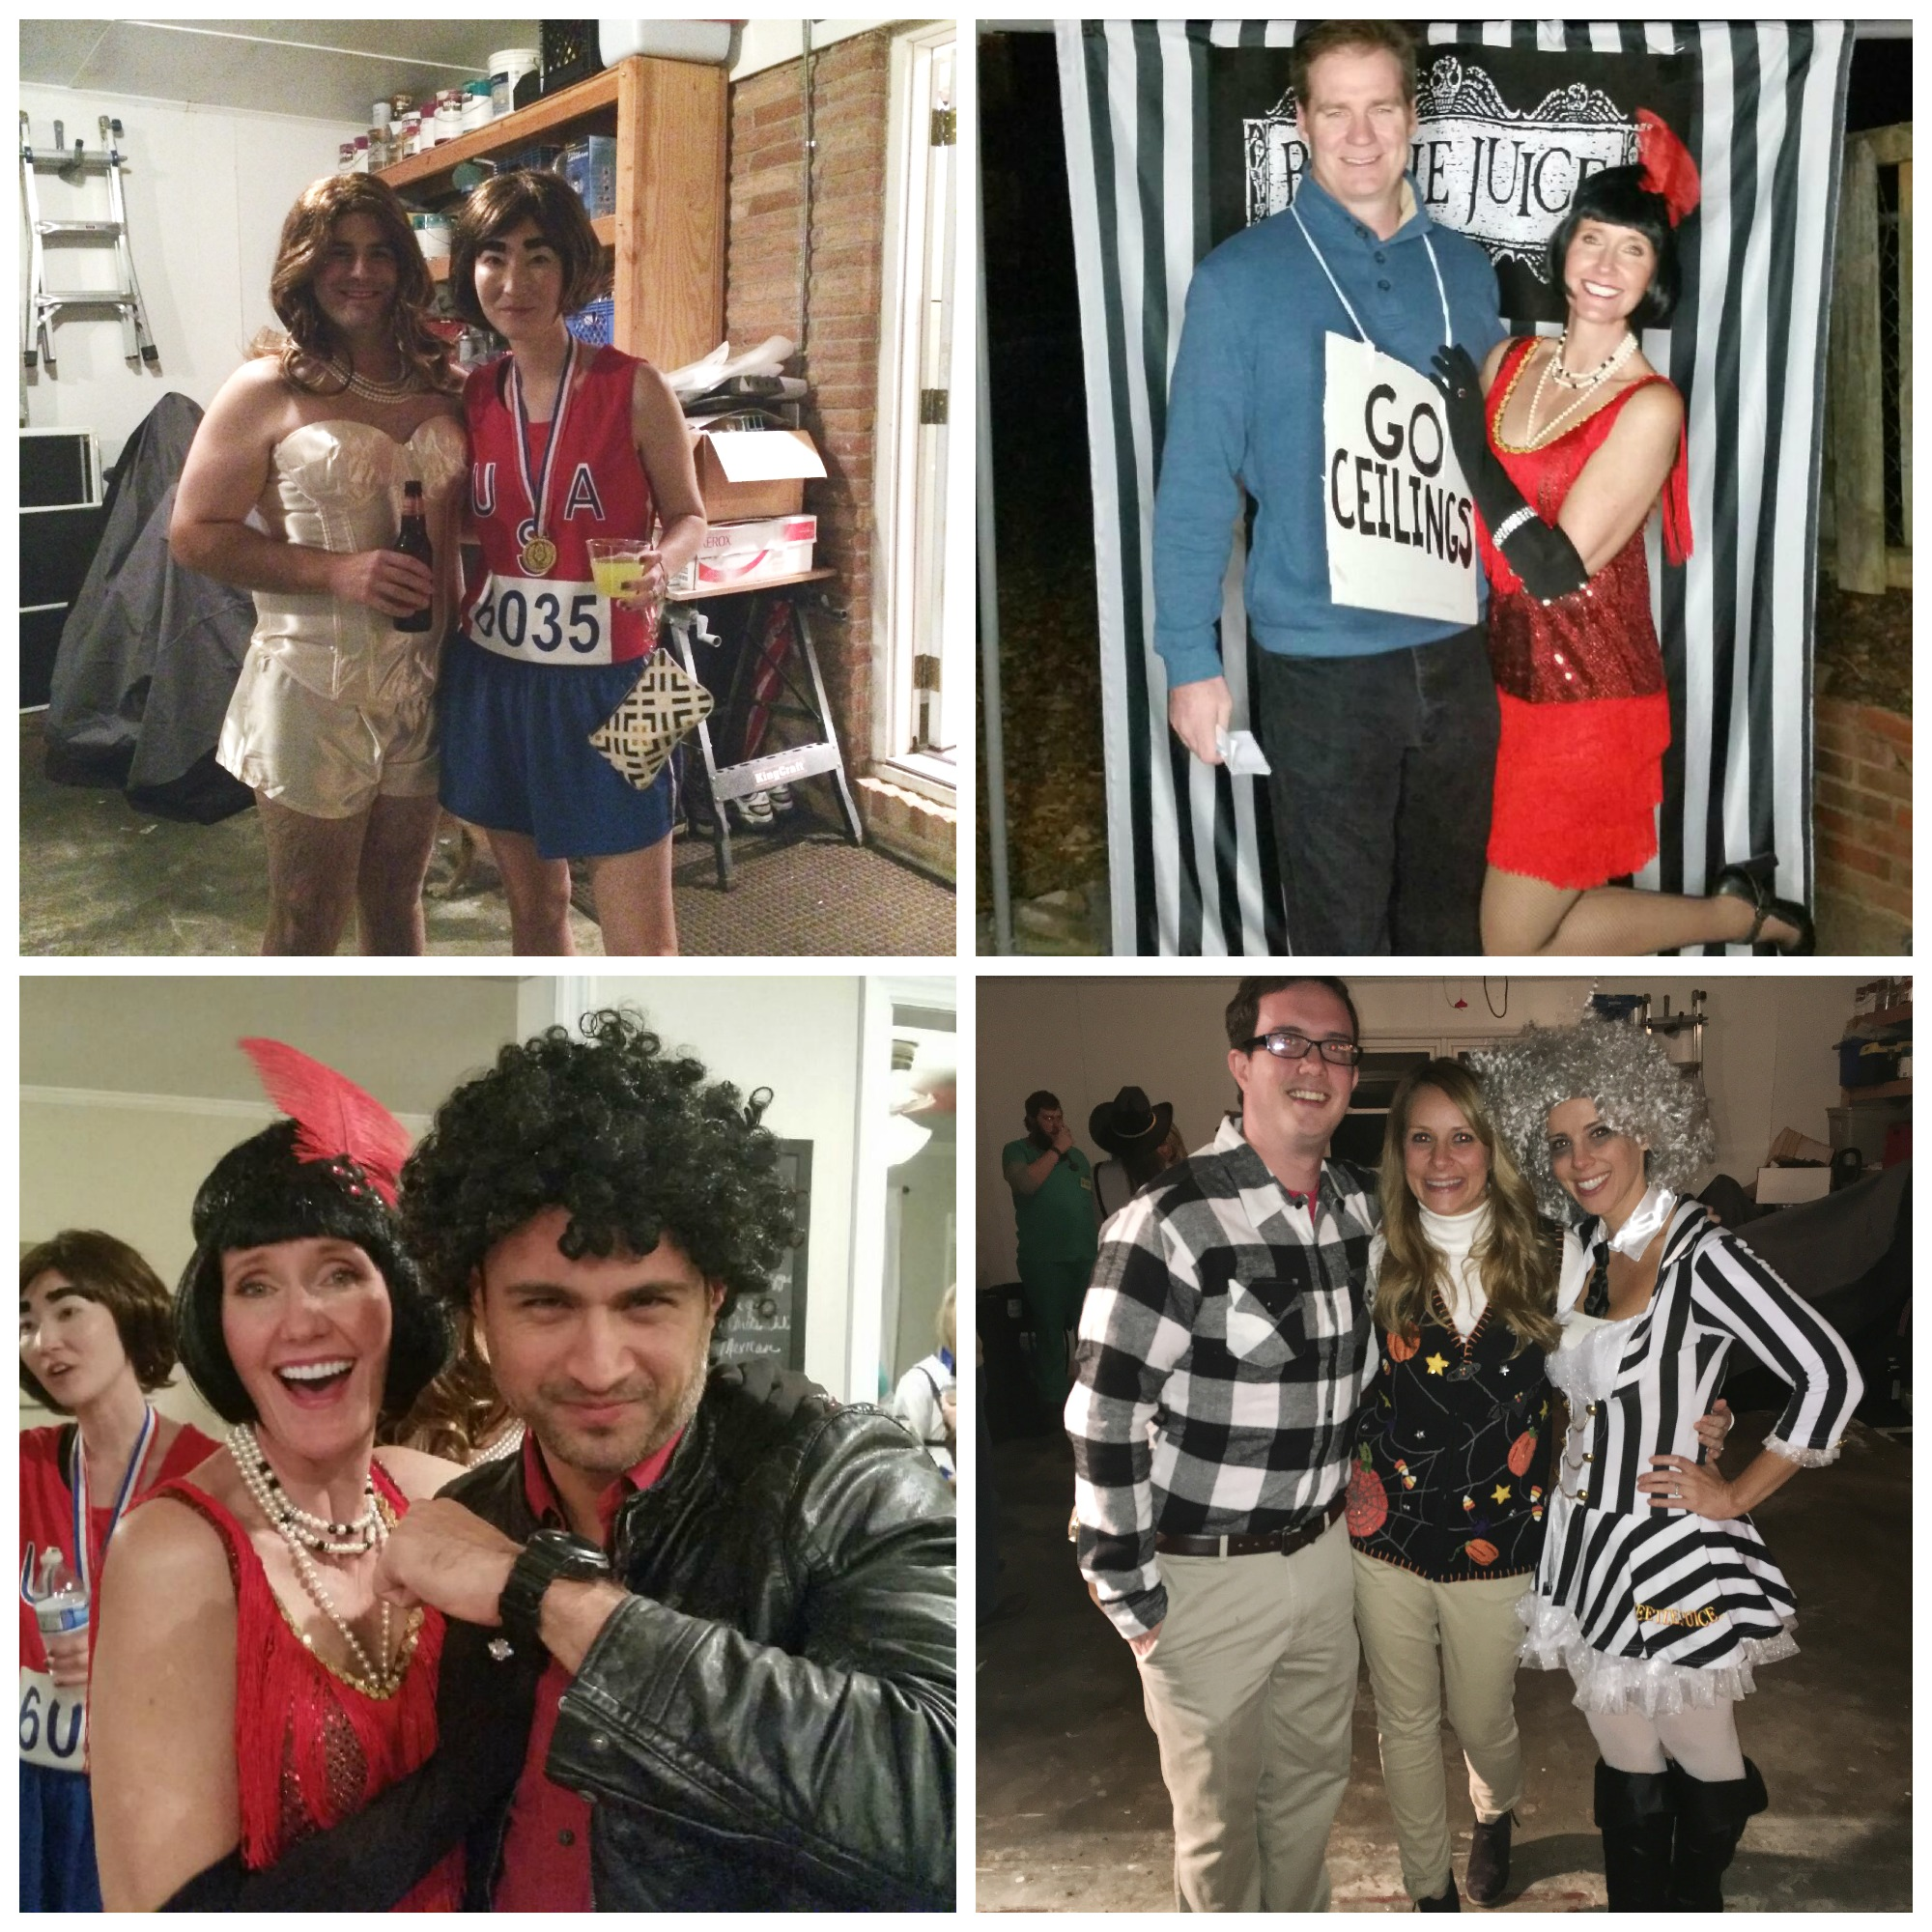 Beetlejuice Halloween Party - Guest Collage 4